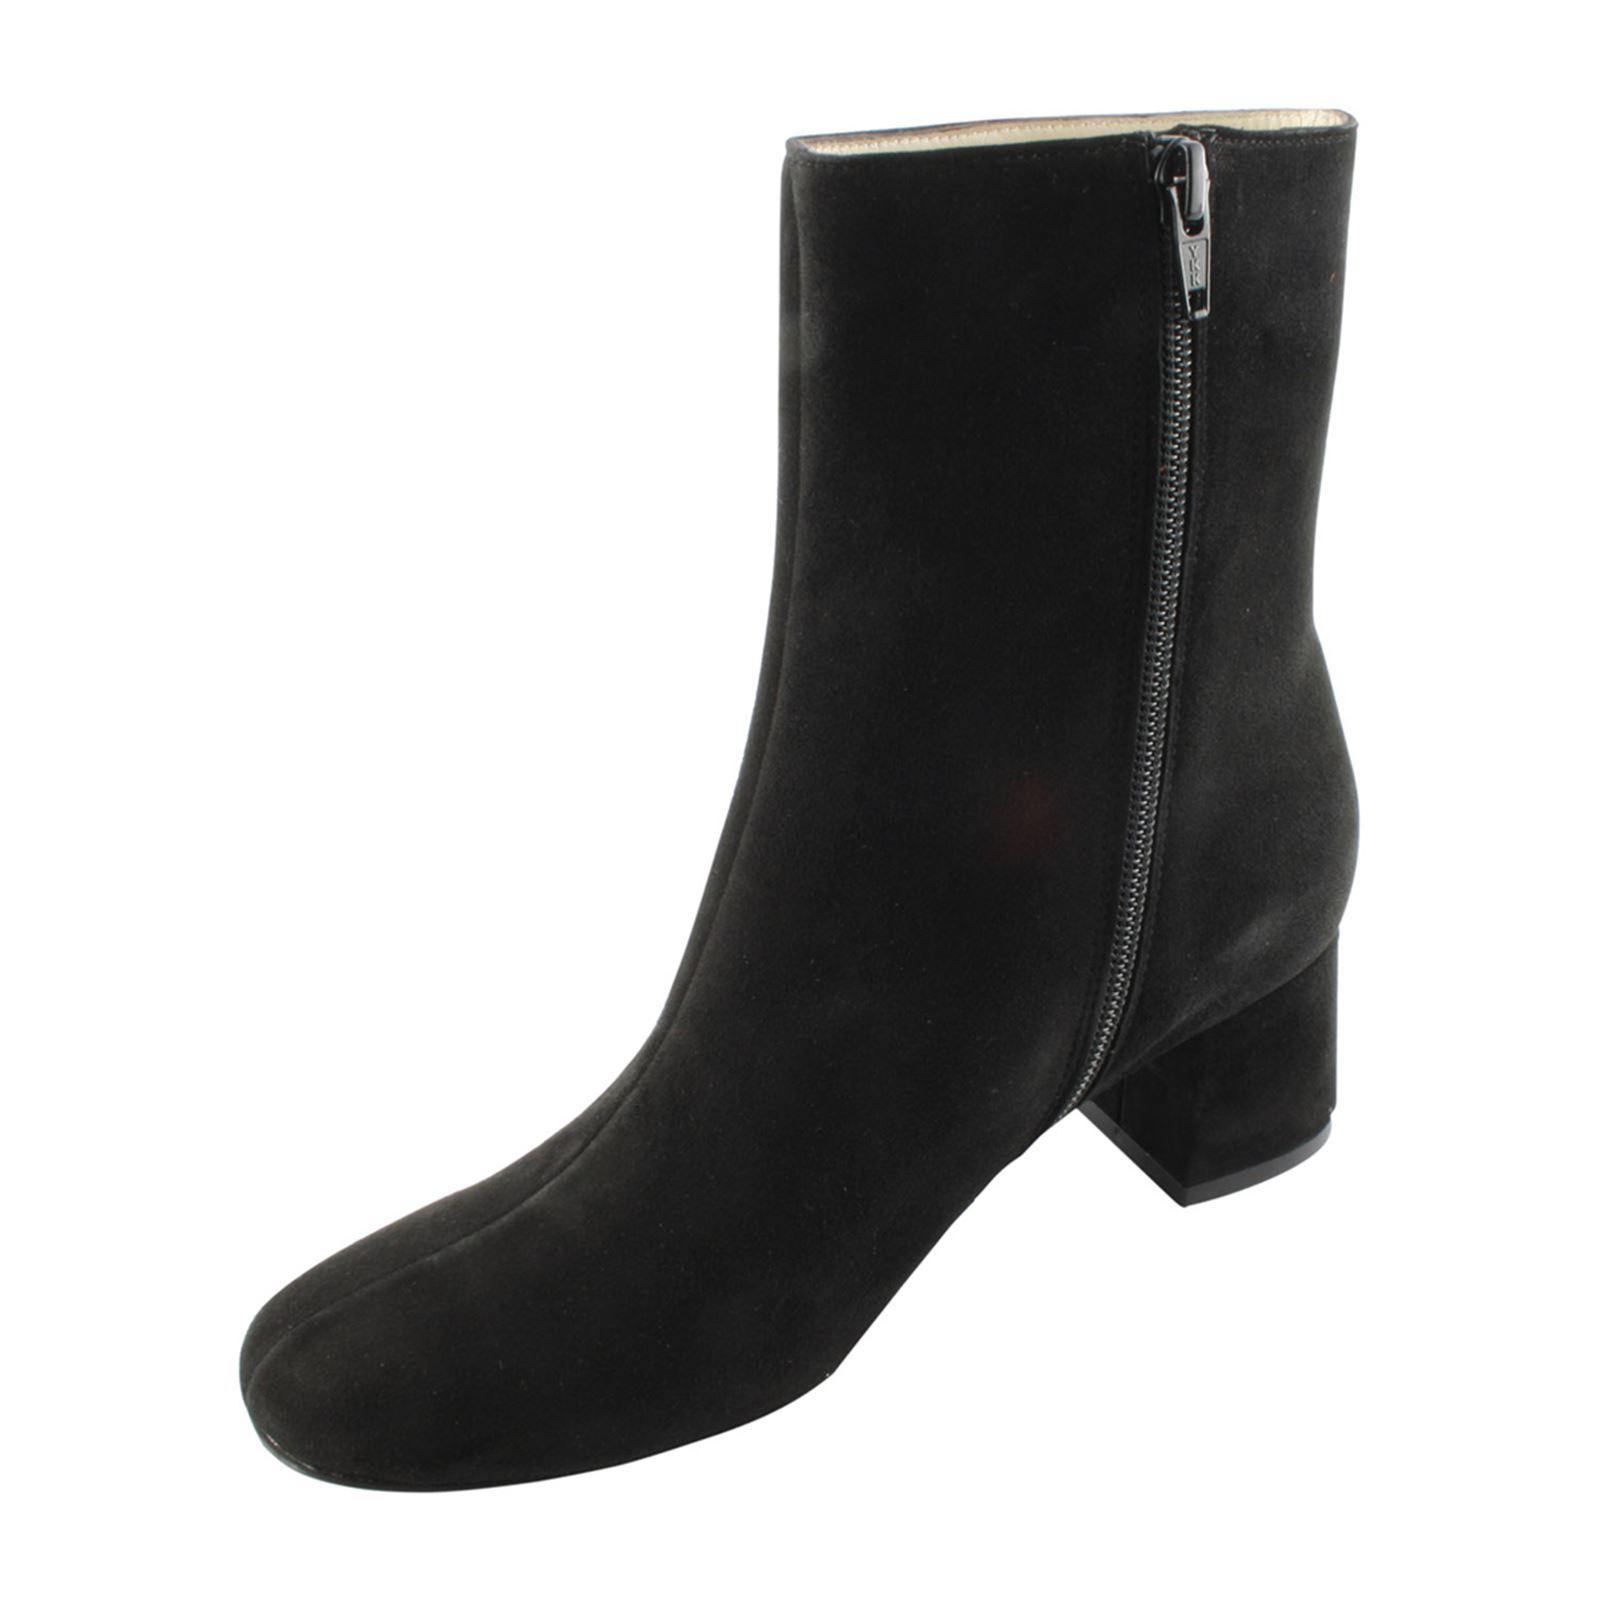 Exclusif Bottines Noir Cuir Paris En Faye gFnFTS